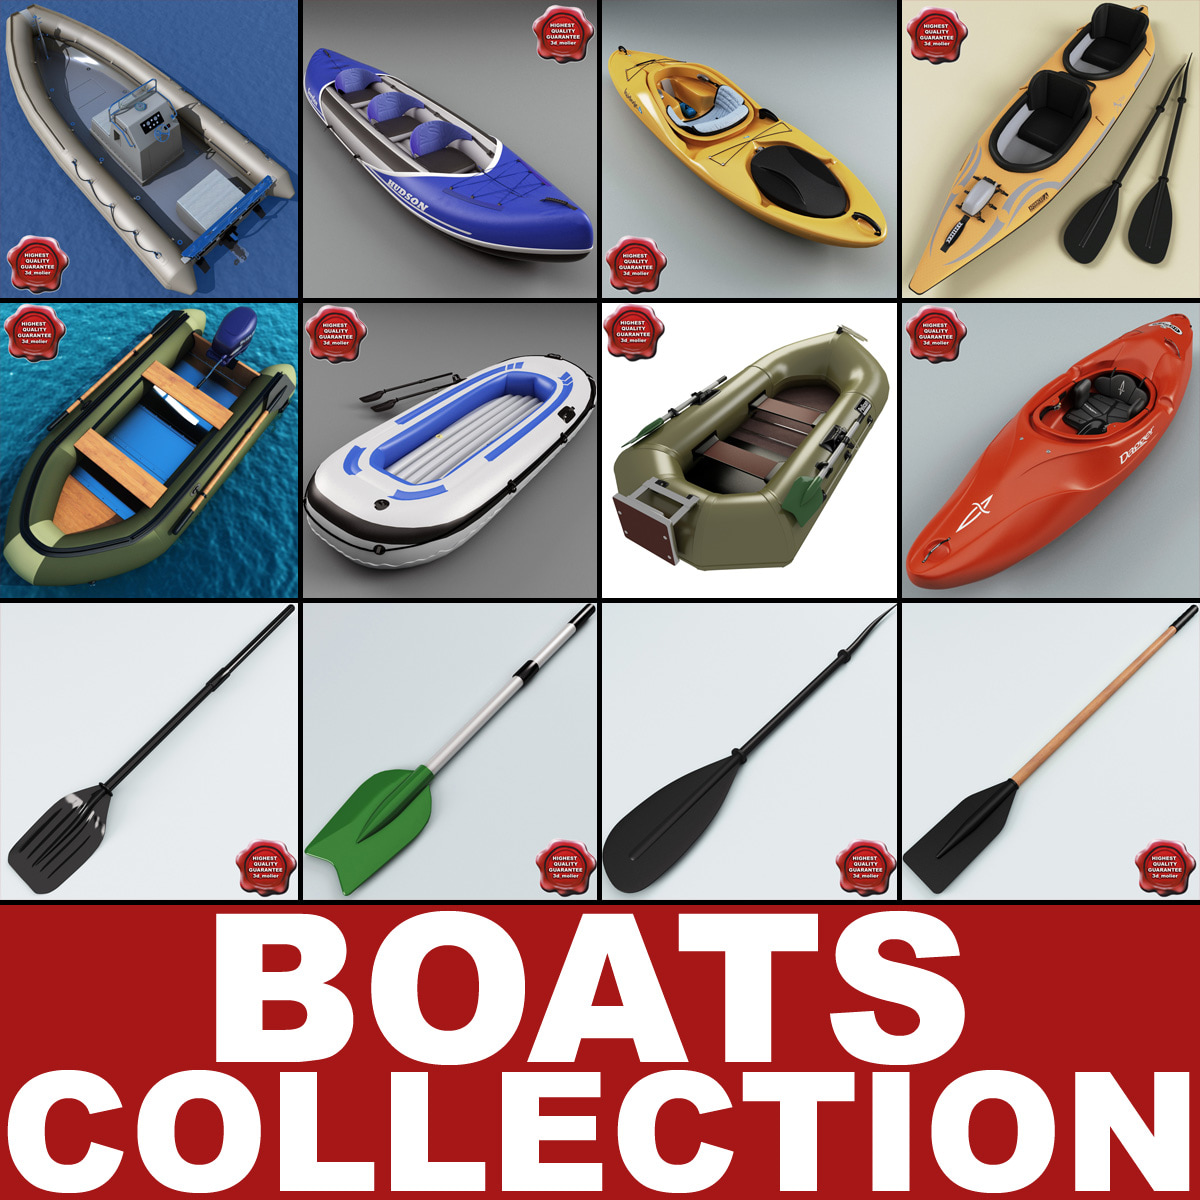 Boats_Collection_V2_000.jpg